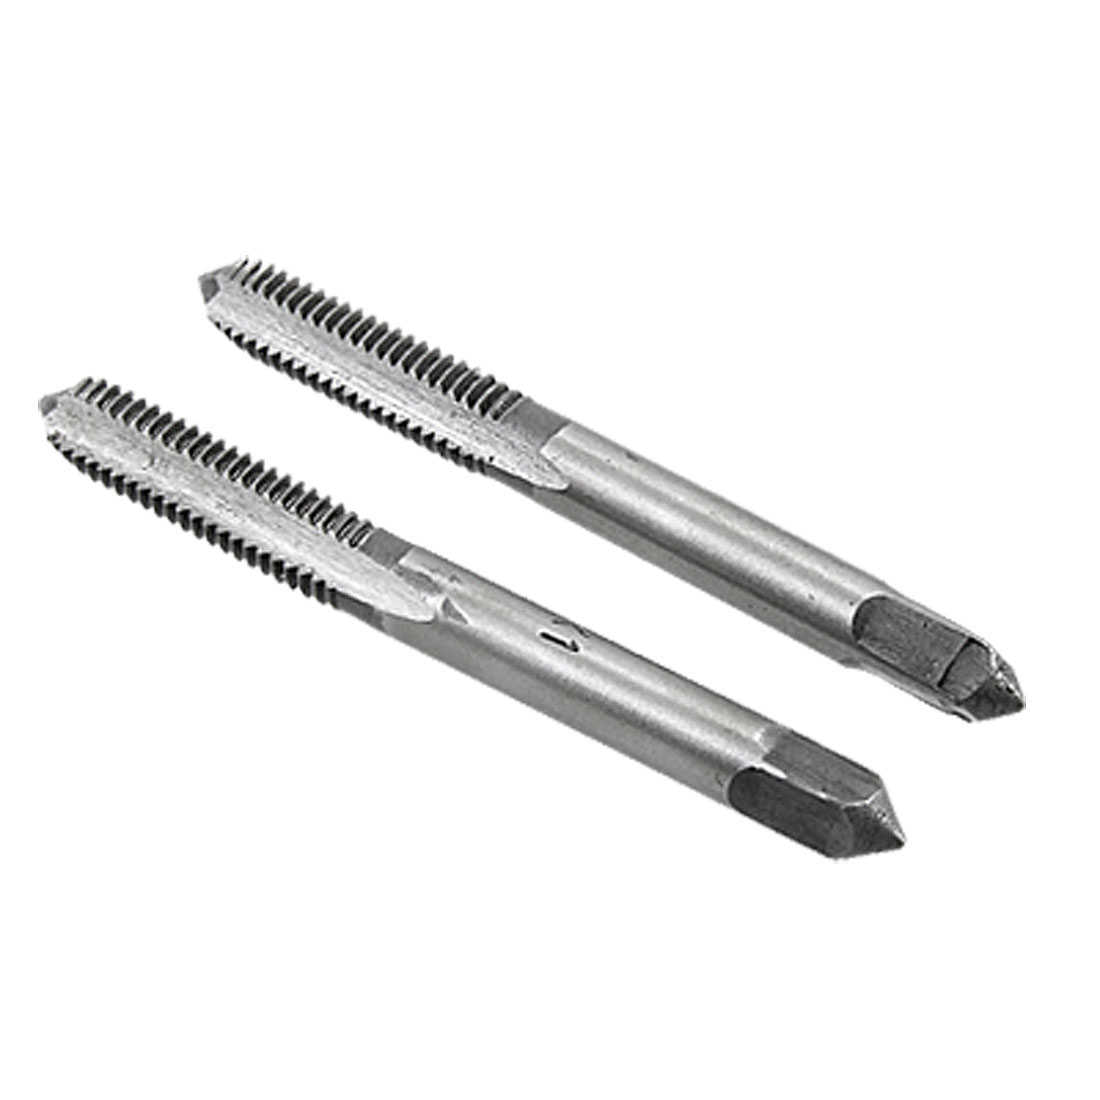 Threaded Flute Spring Steel 6mm hand Taper Tap Drill Bits